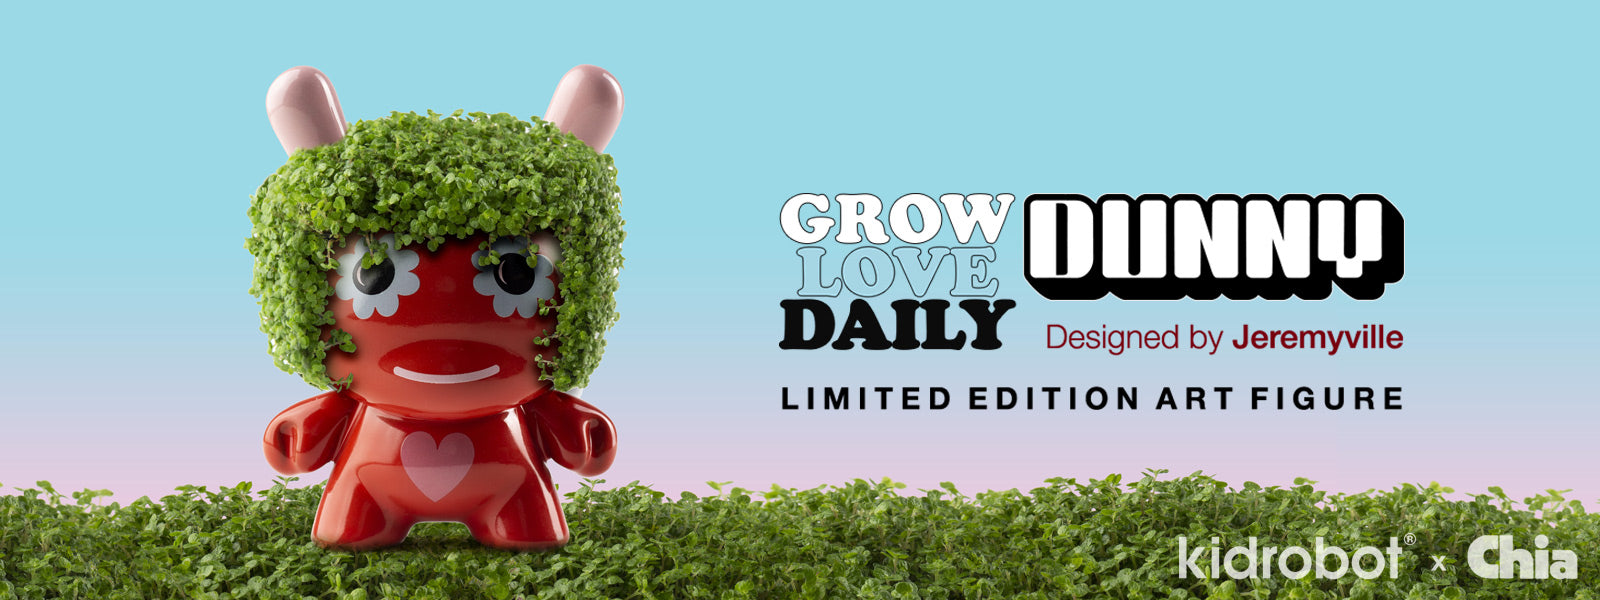 Jeremyville Art Toys, Collectibles and Dunny by Kidrobot